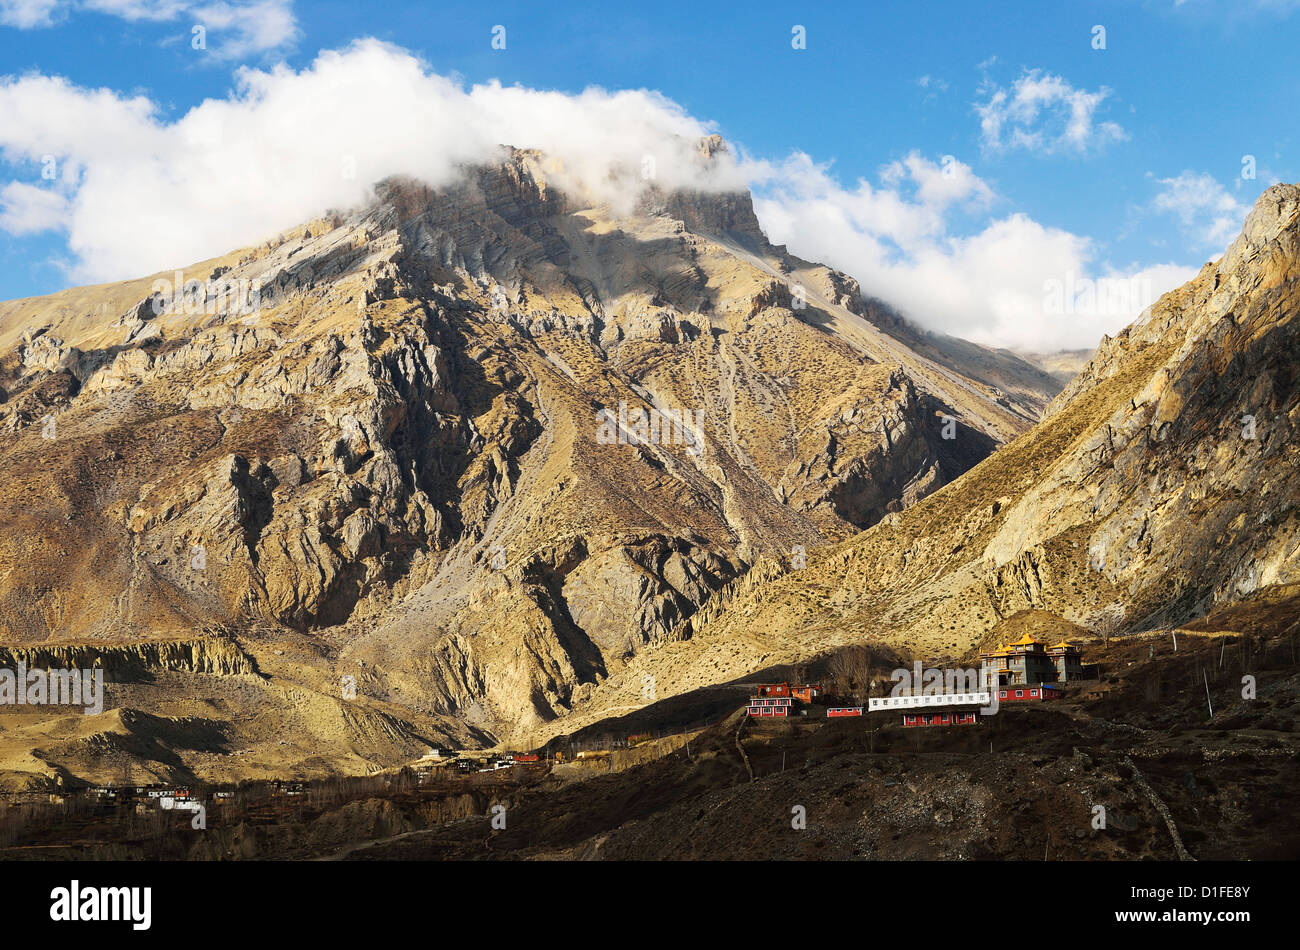 Muktinath Valley, Annapurna Conservation Area, Mustang District, Dhawalagiri, Western Region (Pashchimanchal), Nepal - Stock Image